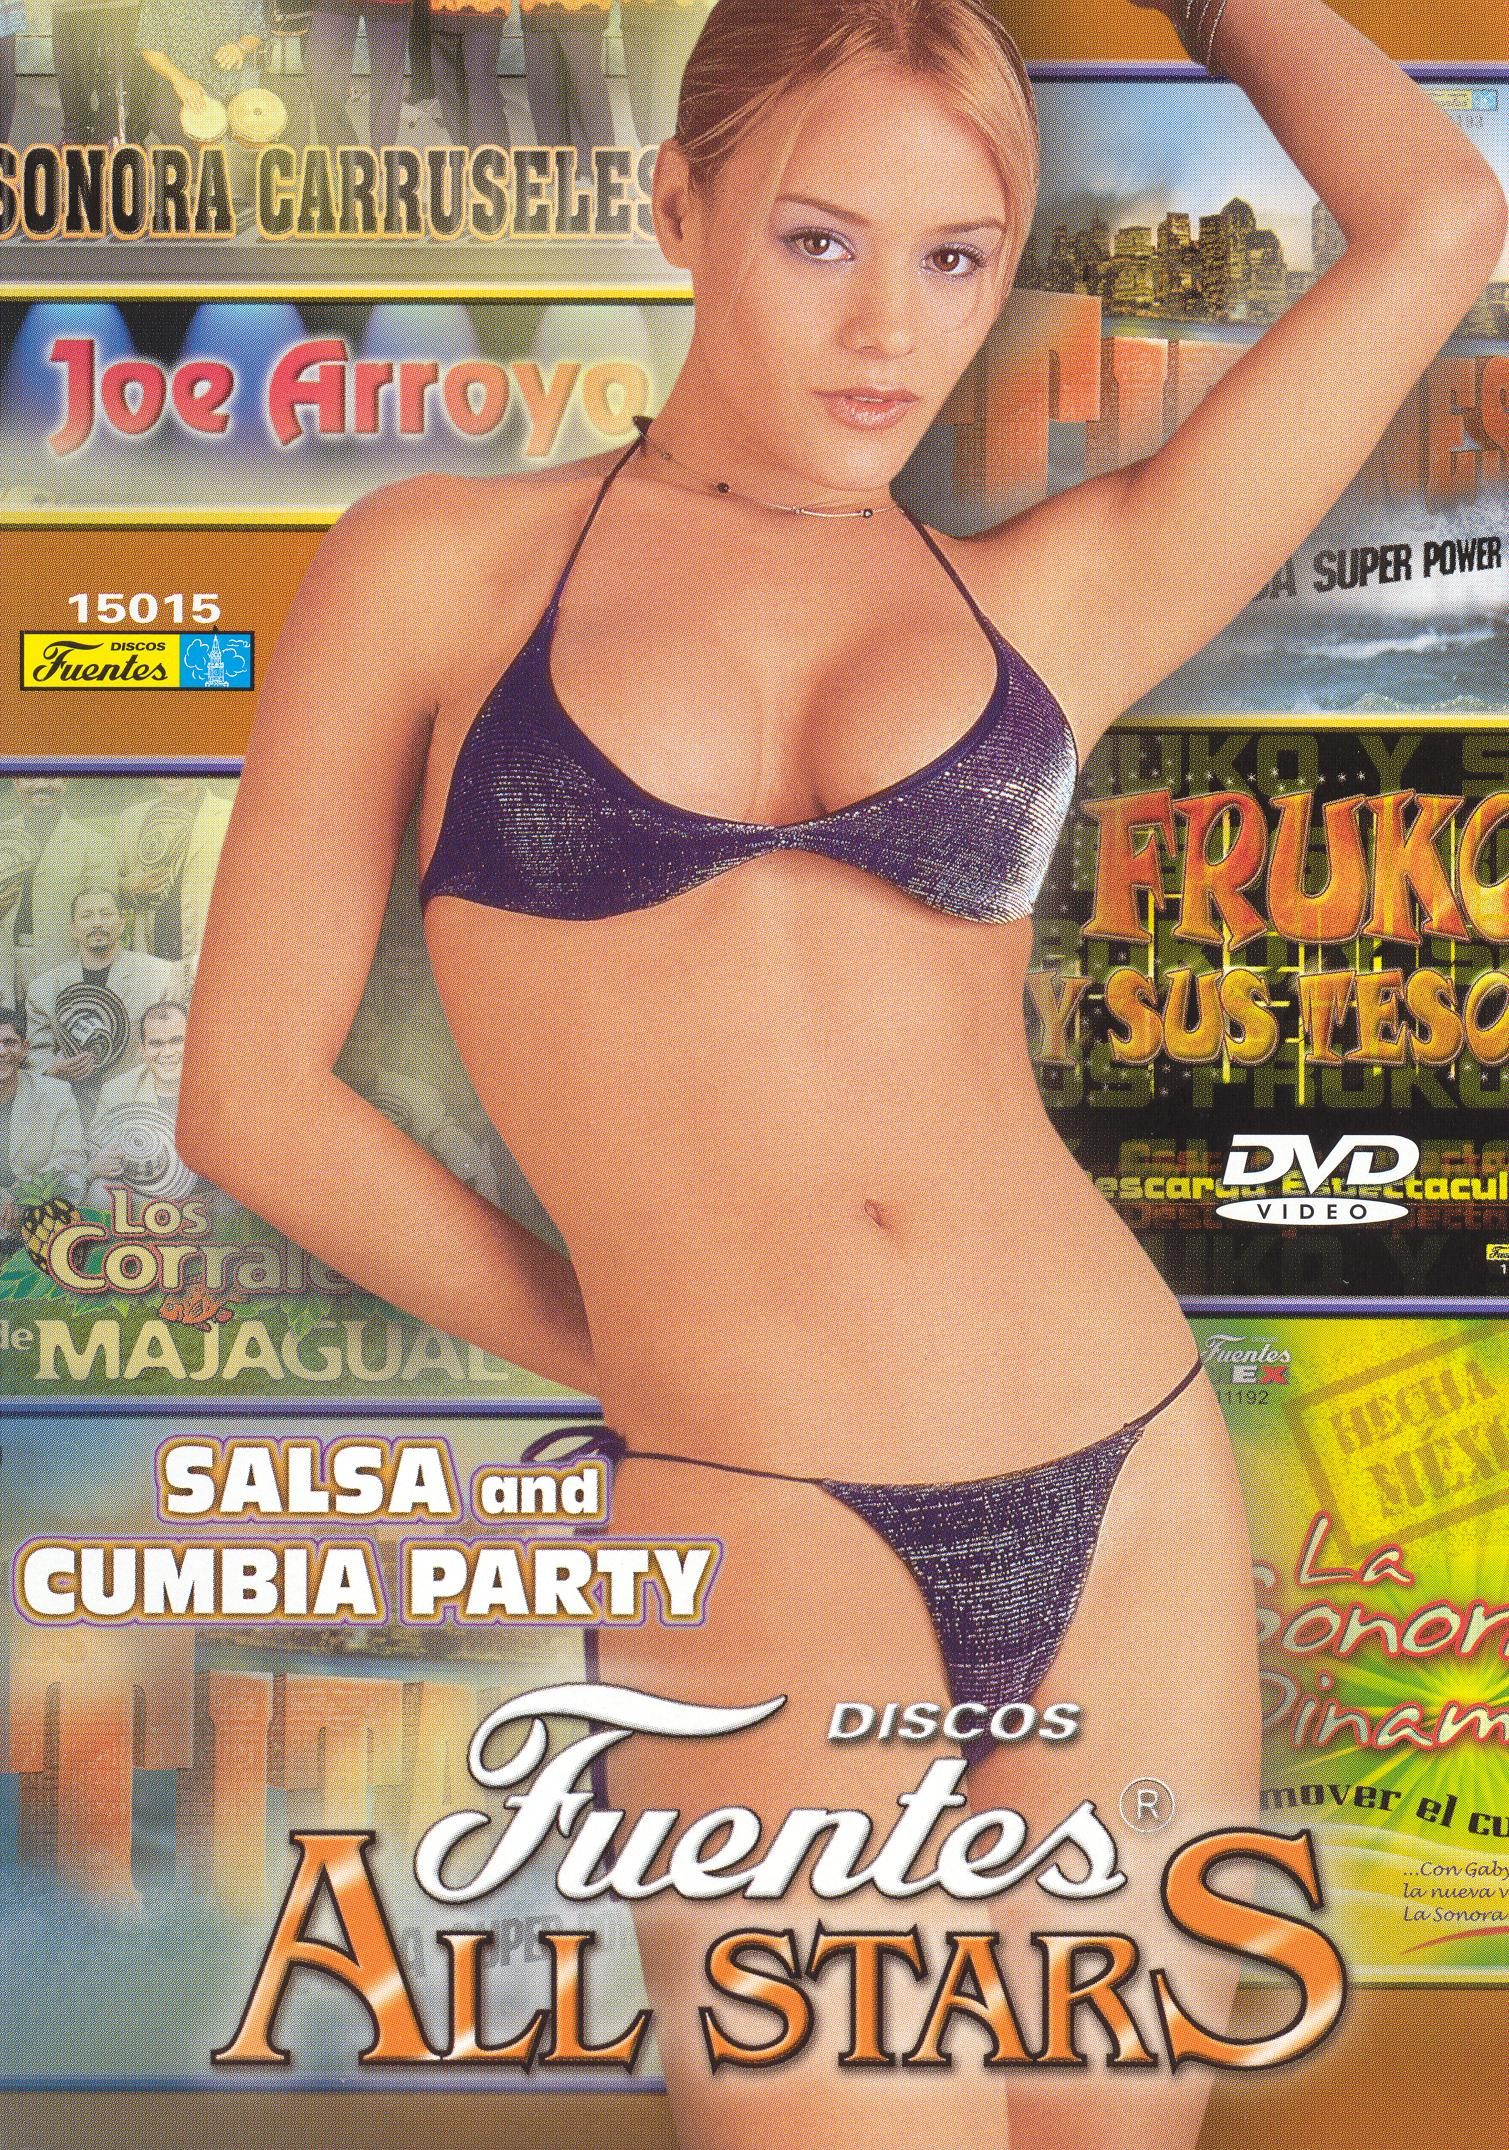 Discos Fuentes: Salsa and Cumbia Party